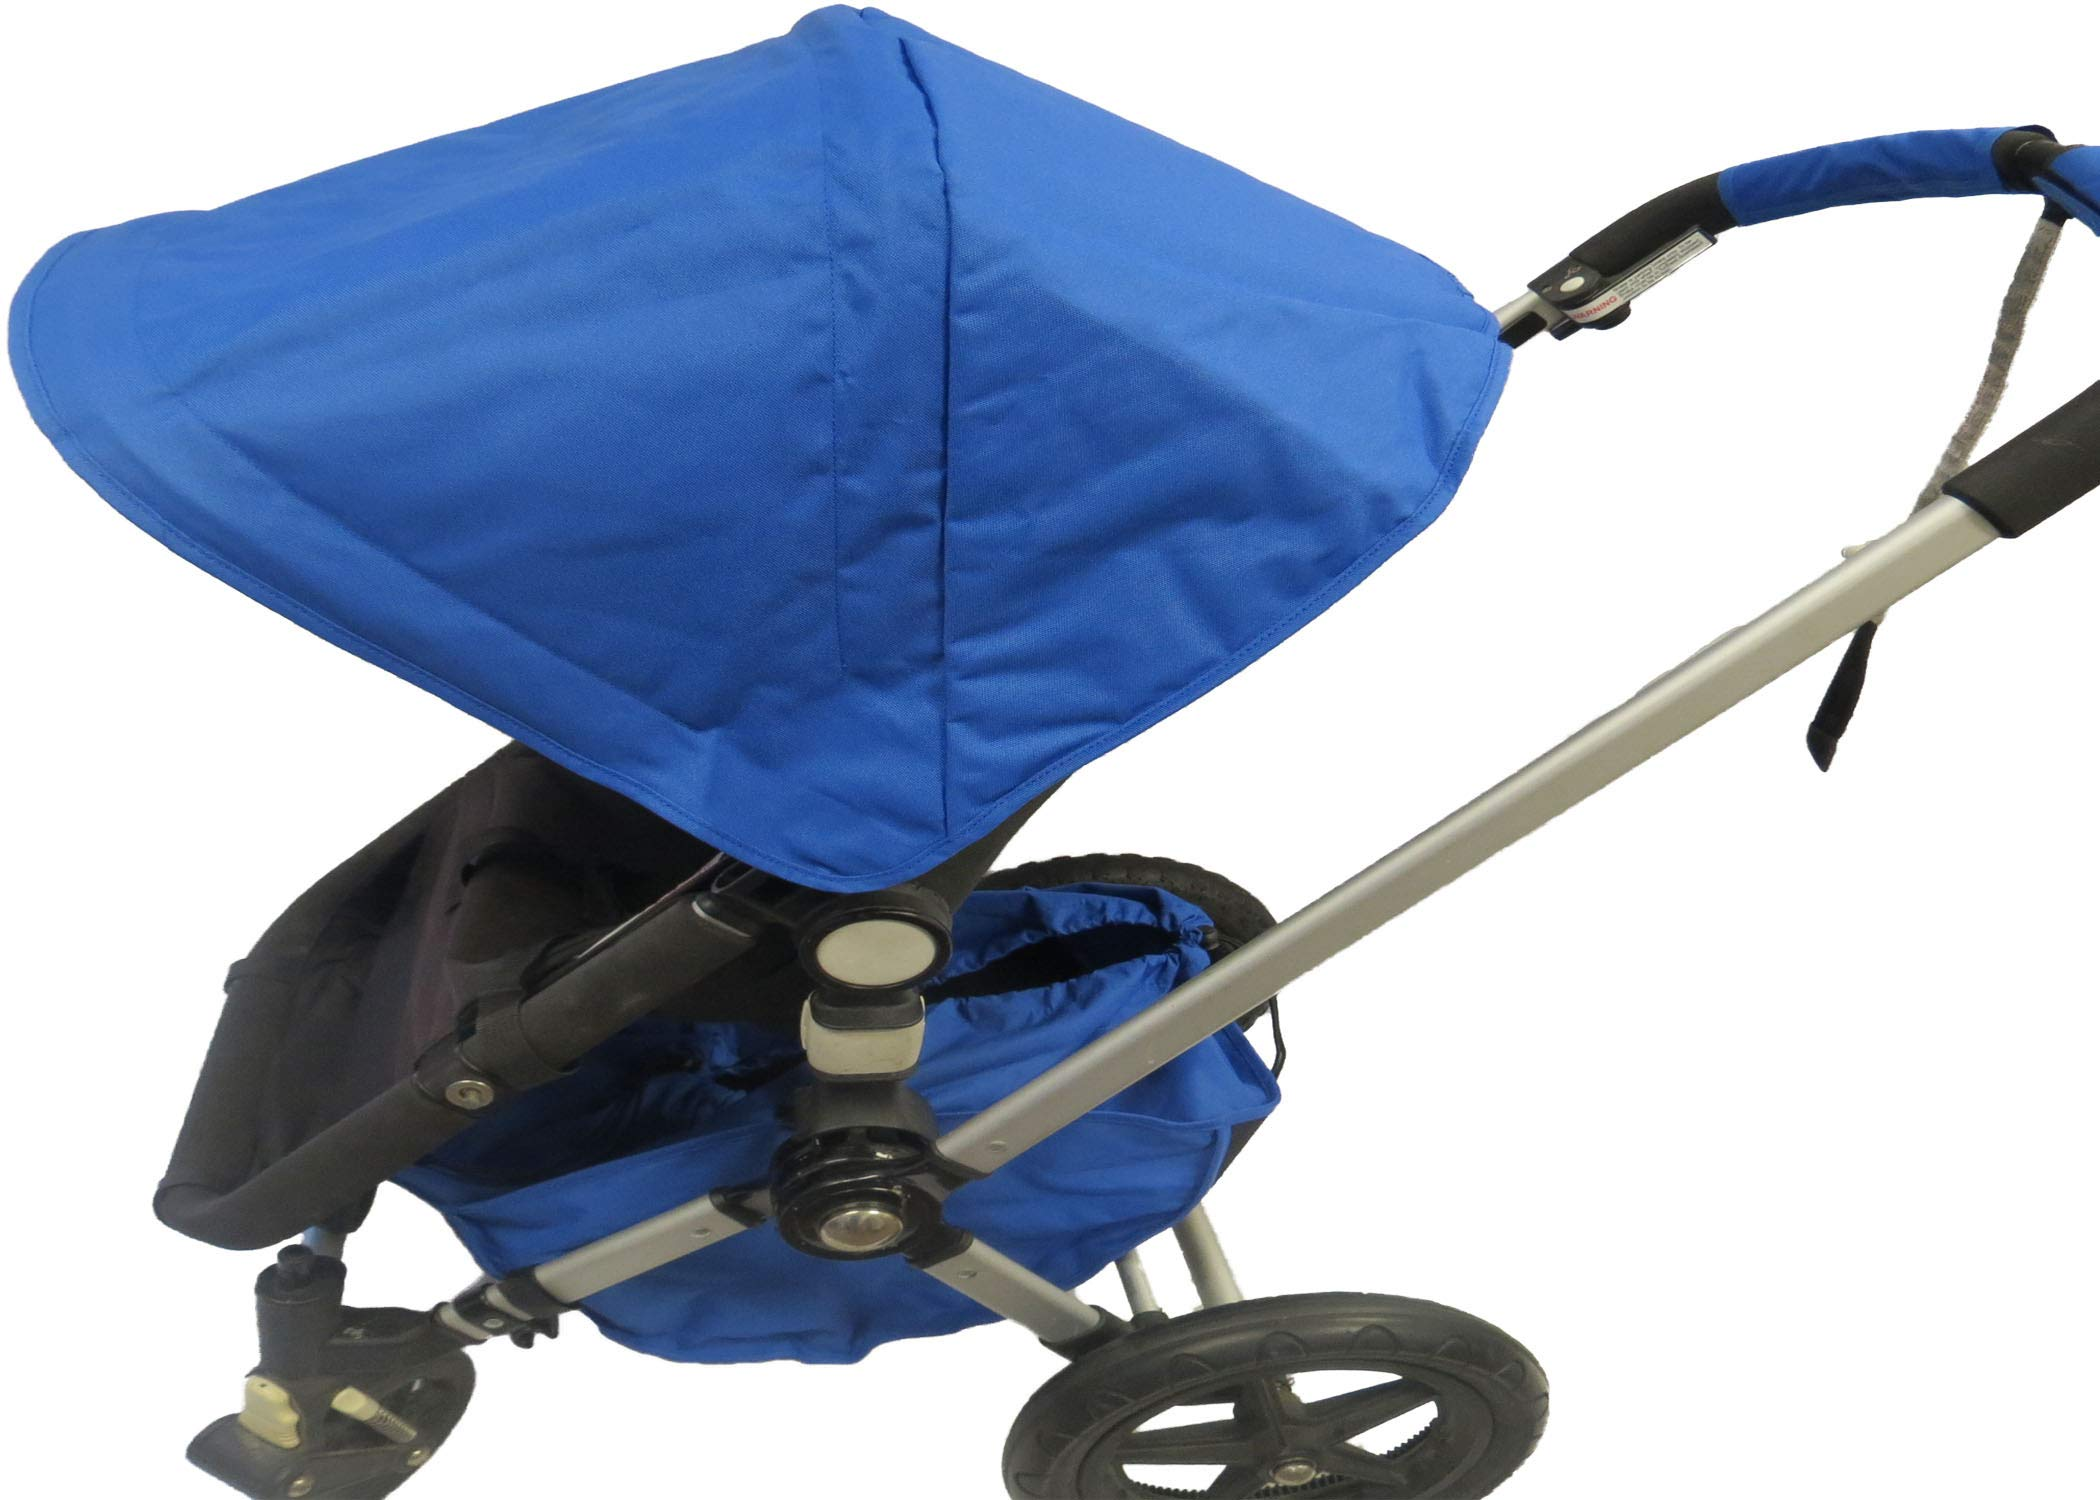 Royal Blue Sun Shade Canopy and Large Under Seat Storage Basket Plus Free Handle Bar Covers for Bugaboo Cameleon 1, 2, 3, Frog Baby Child Strollers